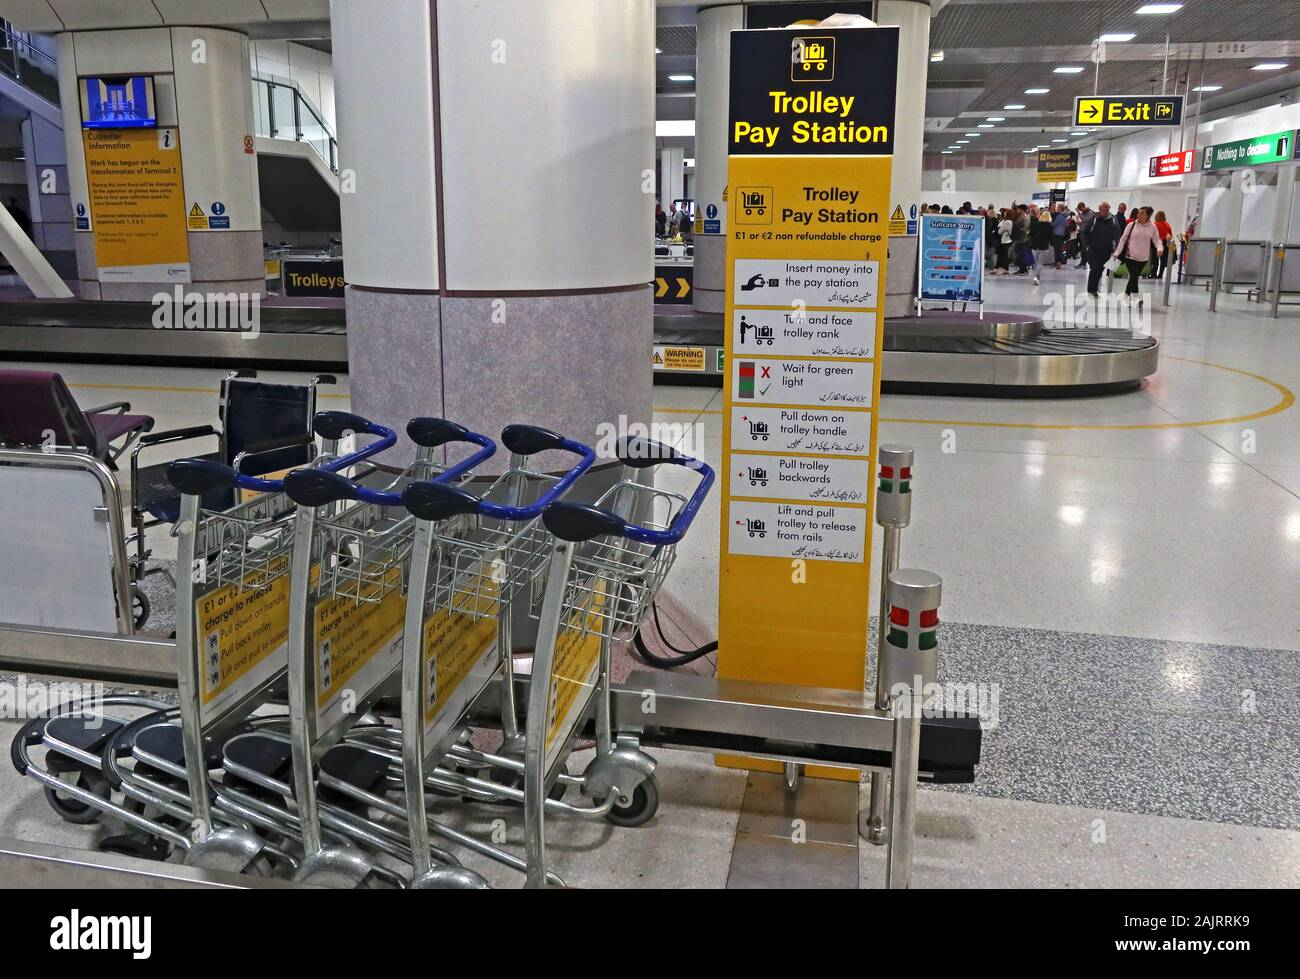 GoTonySmith,HotpixUK,@HotpixUK,airport trolleys,Trolley,Pay Station,airport,hire,hire cost,expensive,not enough,grabbing a baggage trolley,grab a,UK airport,UK,arrival,difficult to find,non-refundable hire,non-refundable,nonrefundable,hired,wheel,wheels,Luggage trolleys cost,Luggage trolley cost,cost,price,sign,station